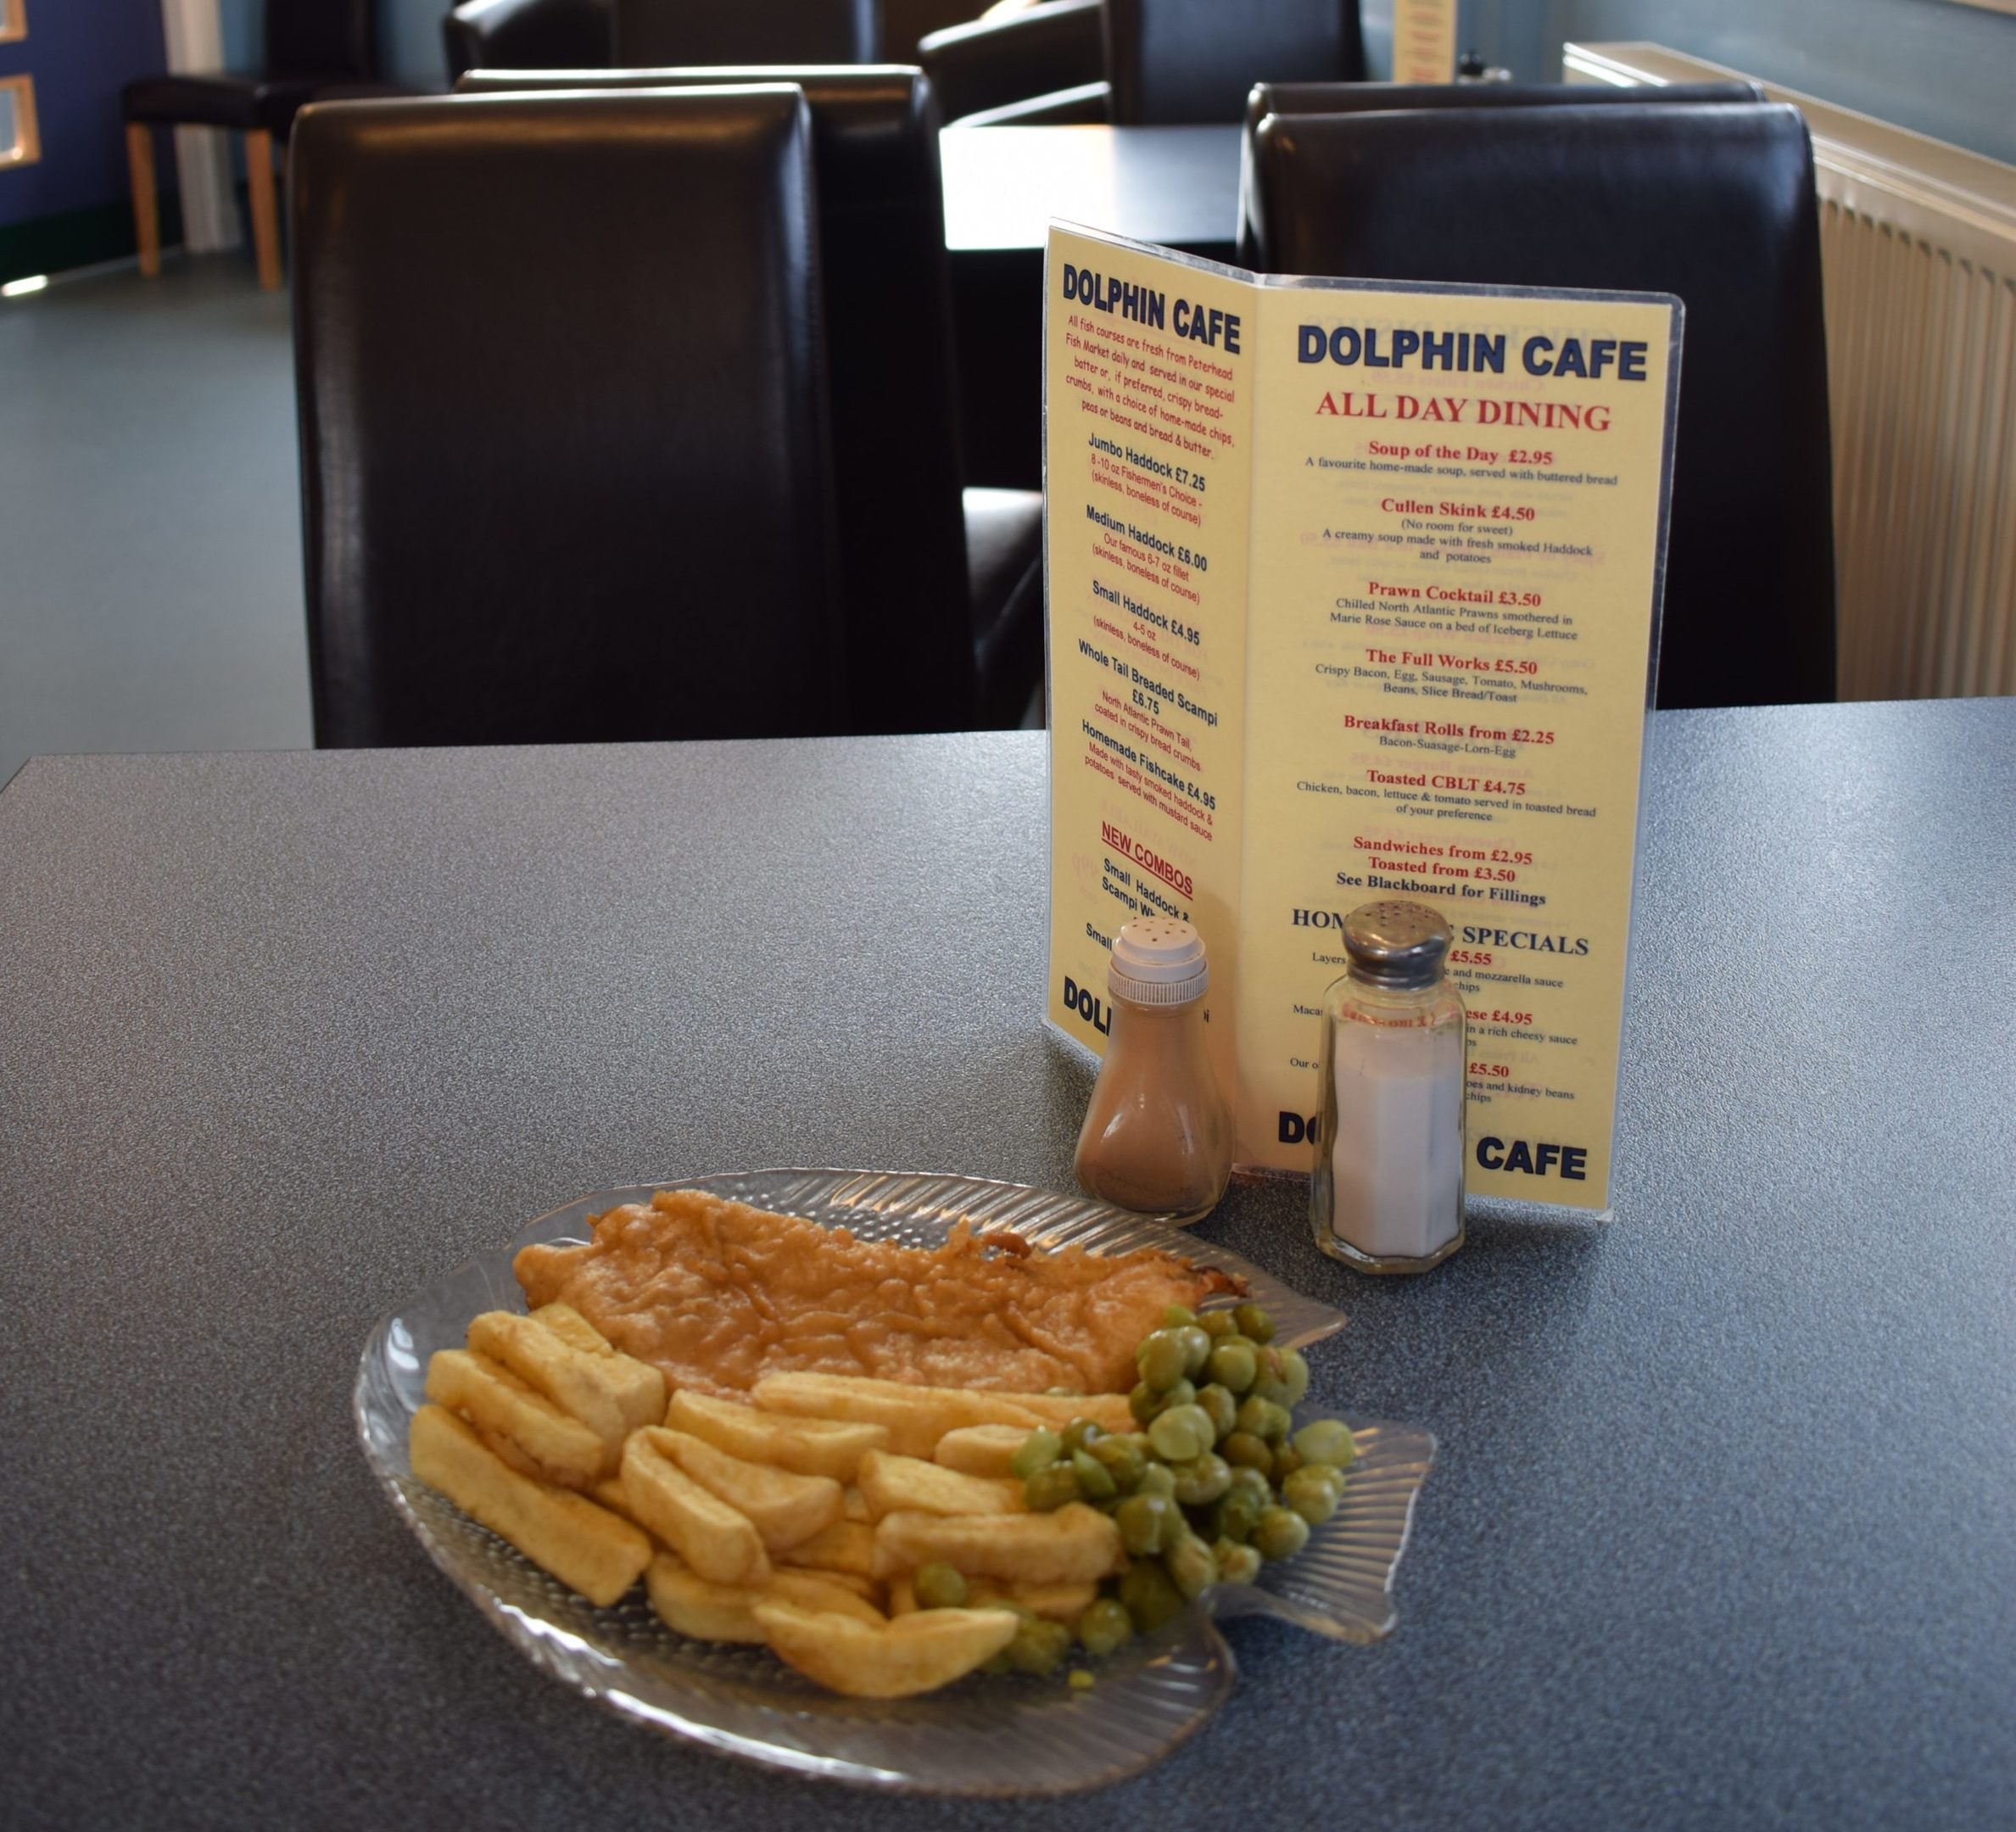 Dolphin Cafe Sponsored image